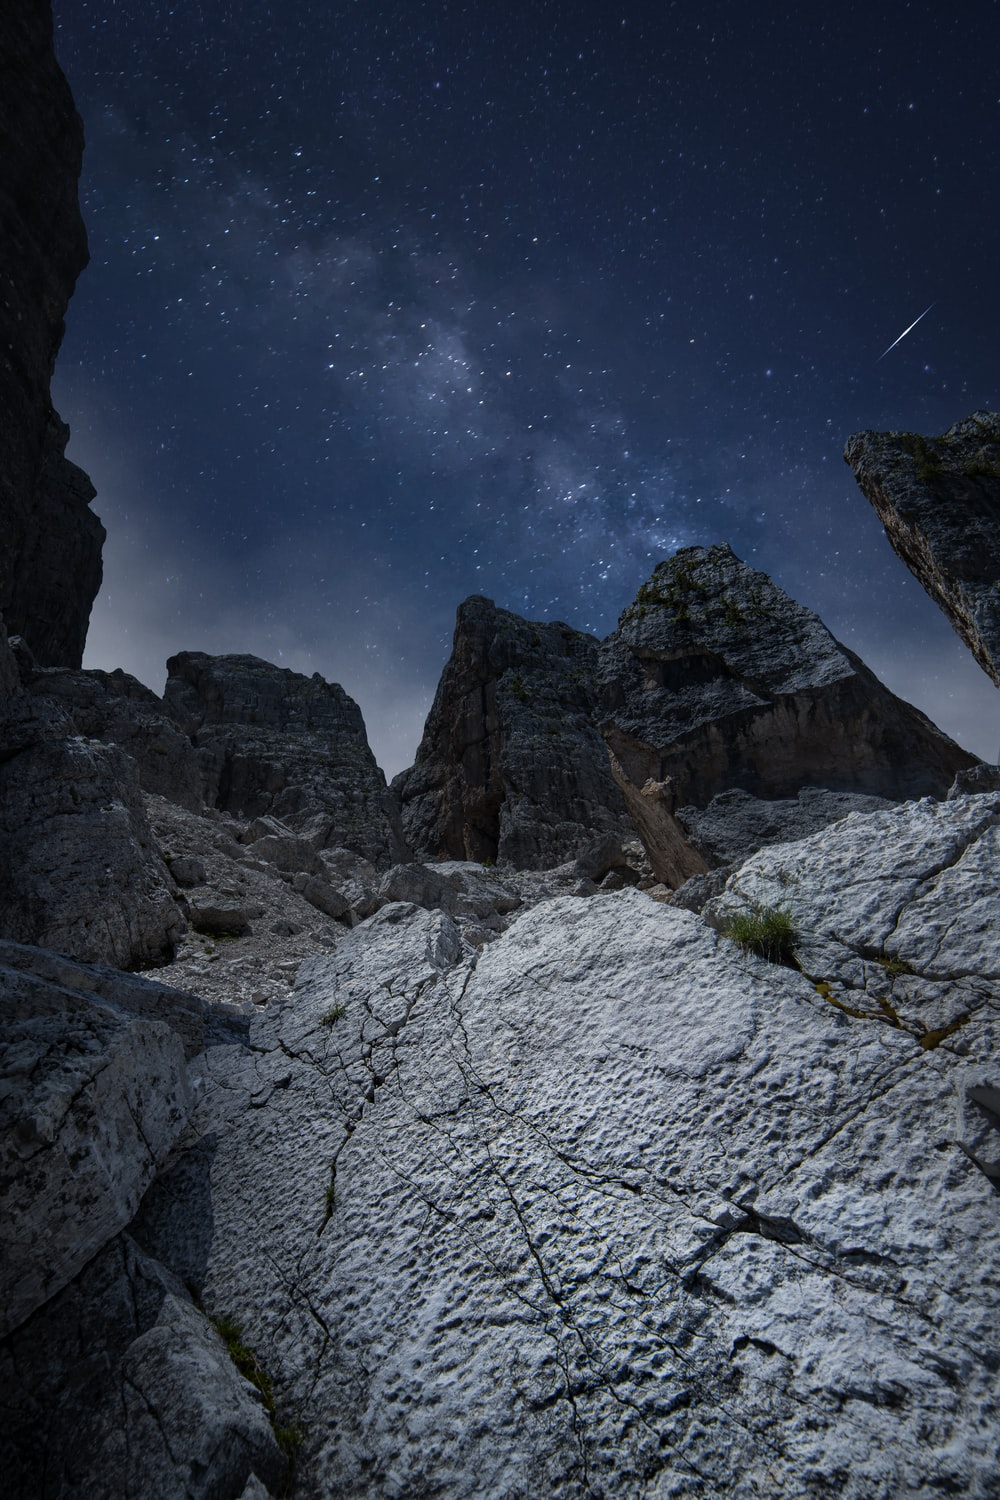 rocky mountain under blue sky during night time